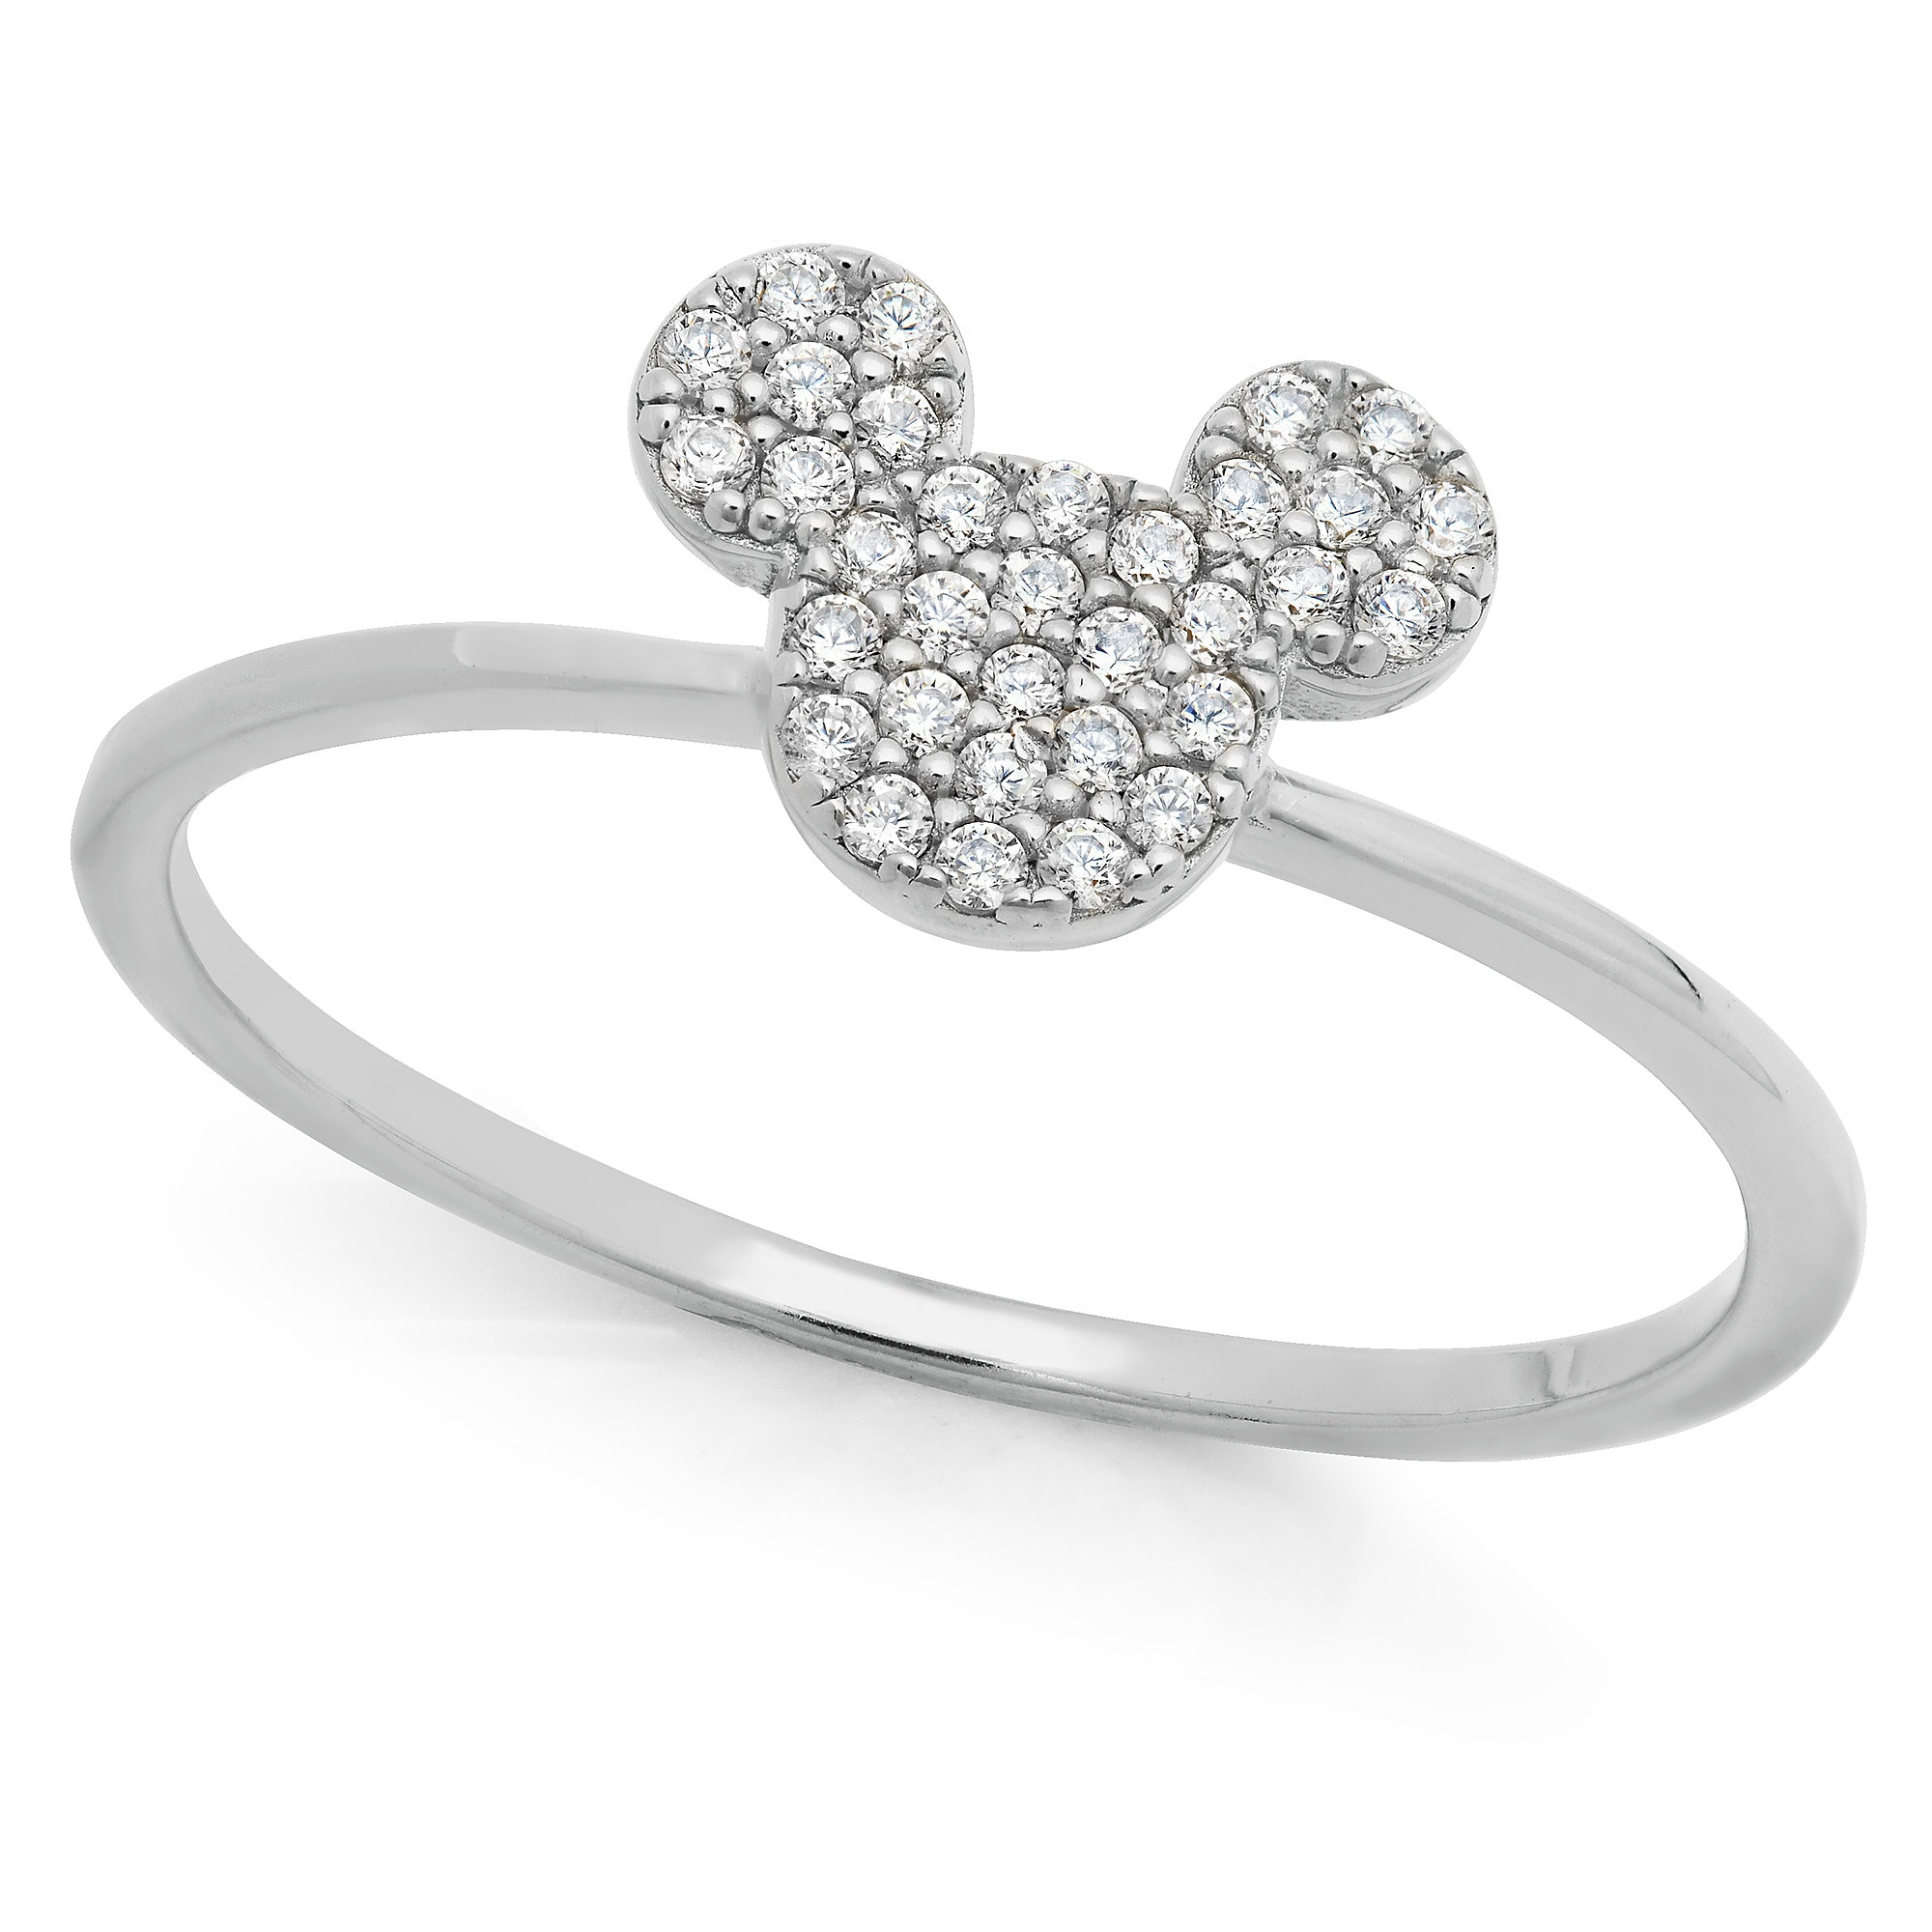 Product Image Of Mickey Mouse Icon Ring By Crislu Platinum 1: Minnie Mouse Wedding Ring At Websimilar.org